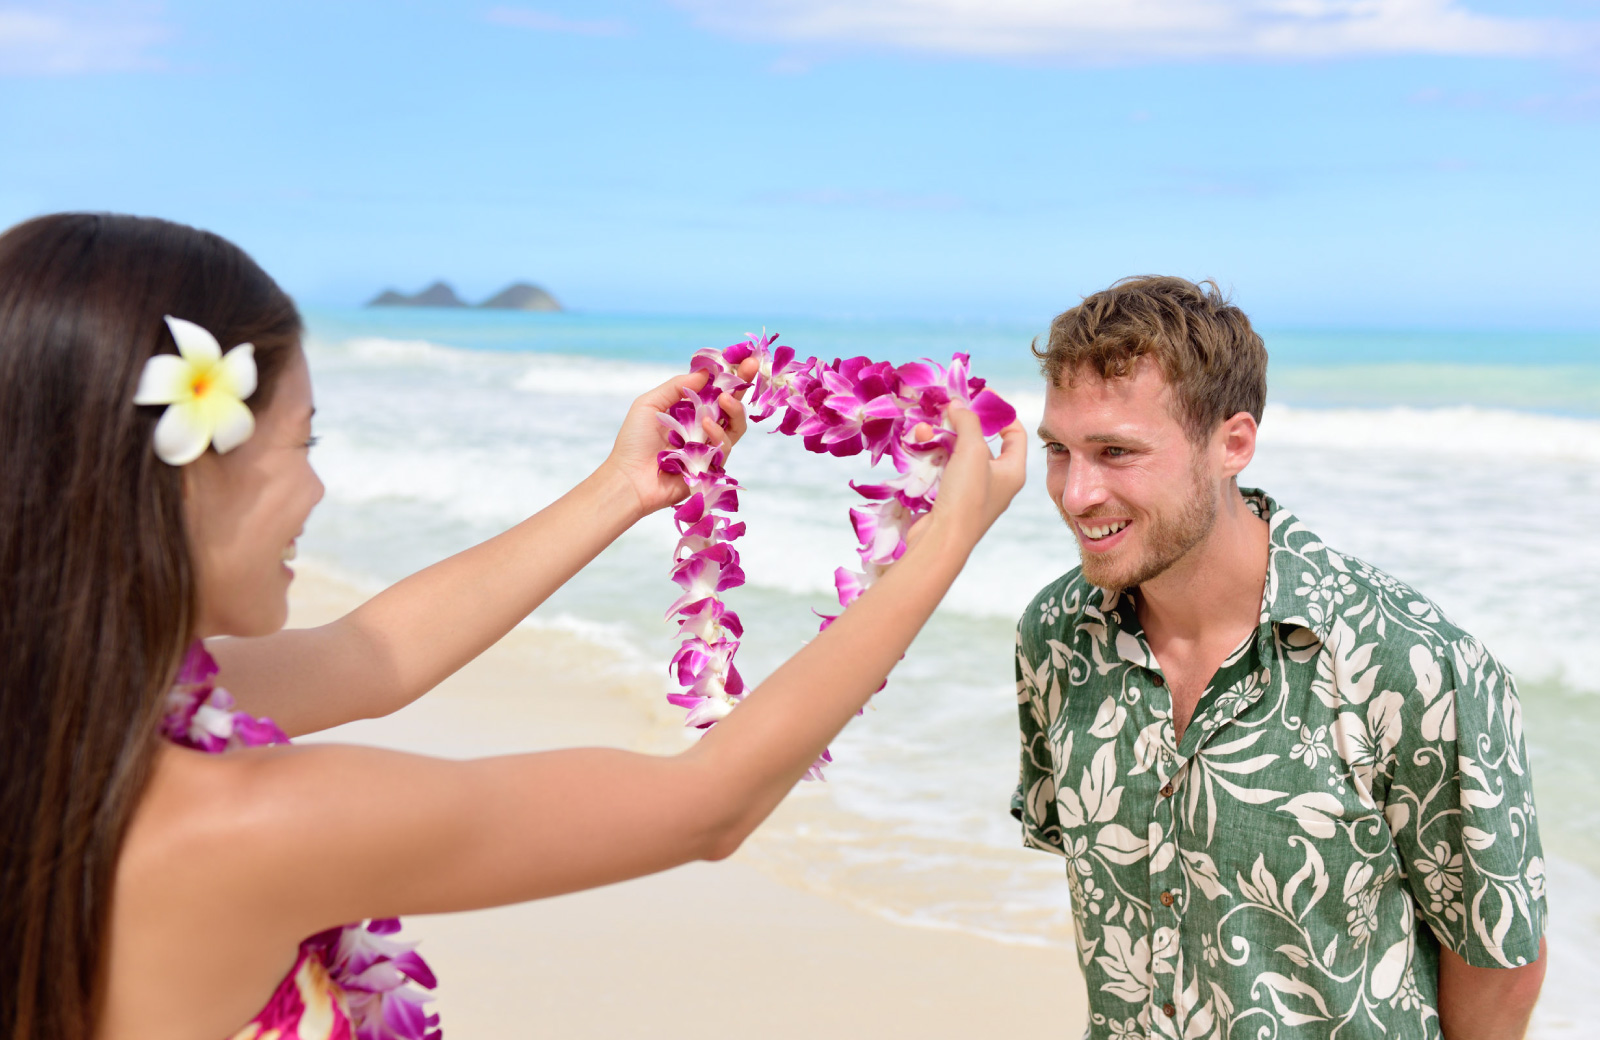 man receiving hawaiian lei